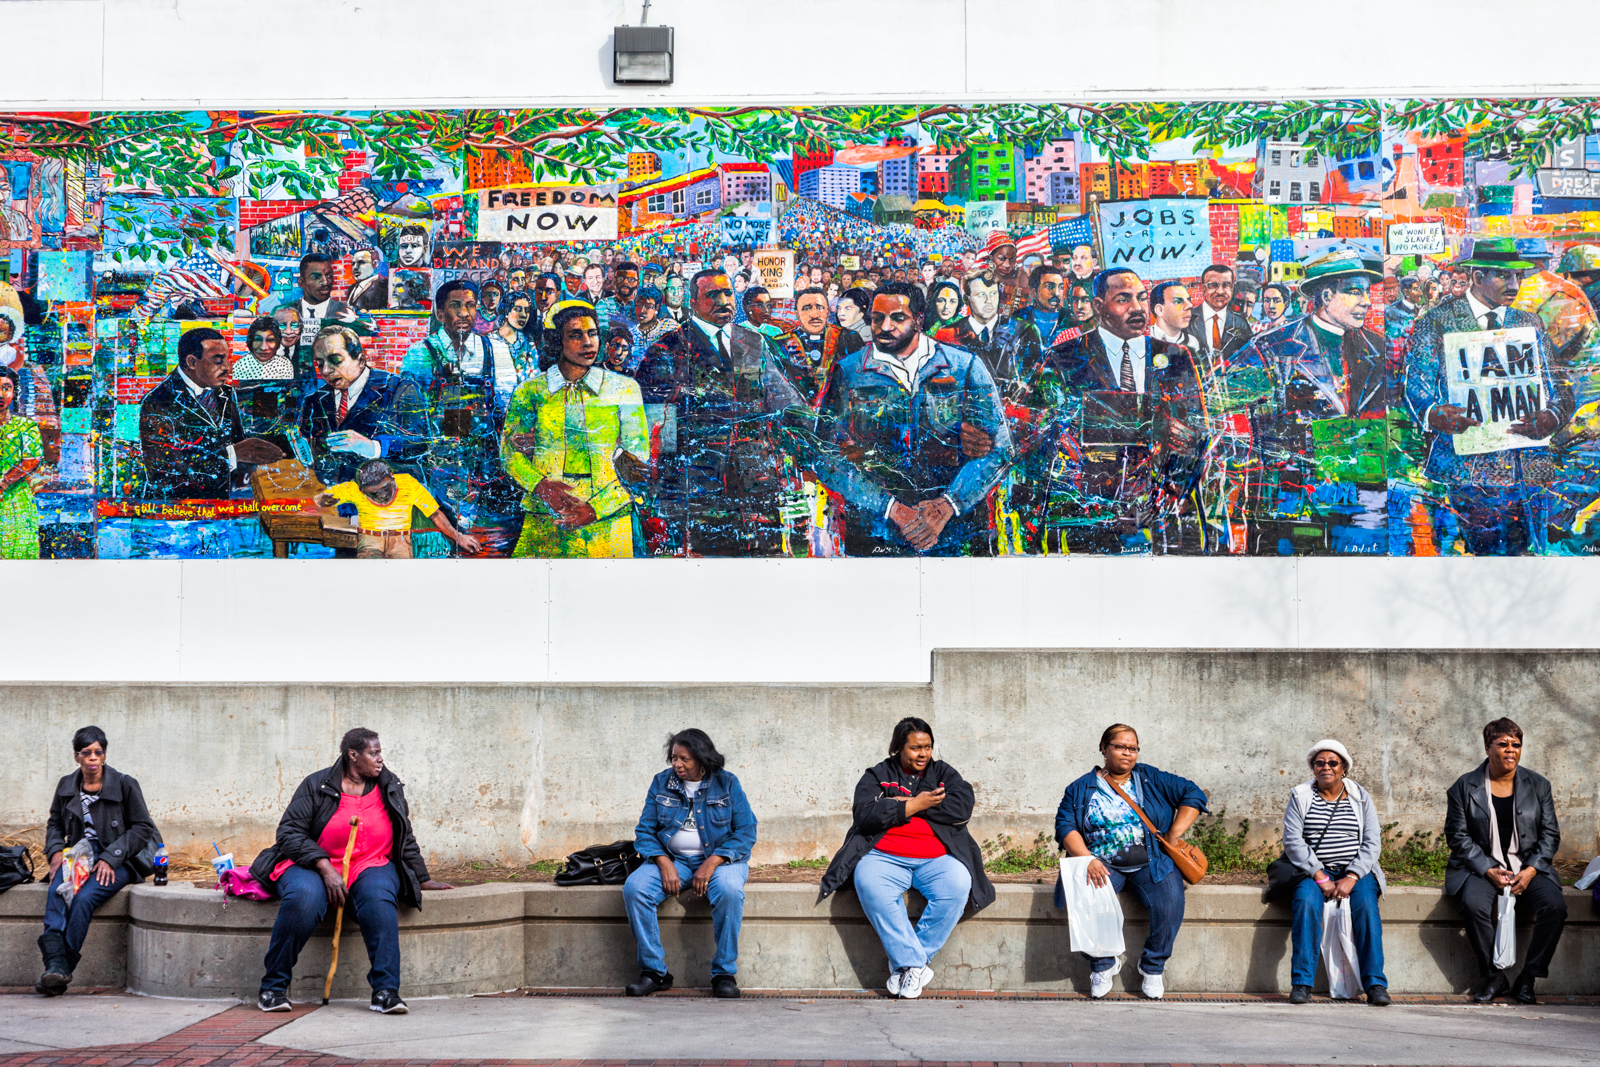 Martin Luther King Jr. Memorial Mural, 2014, Atlanta